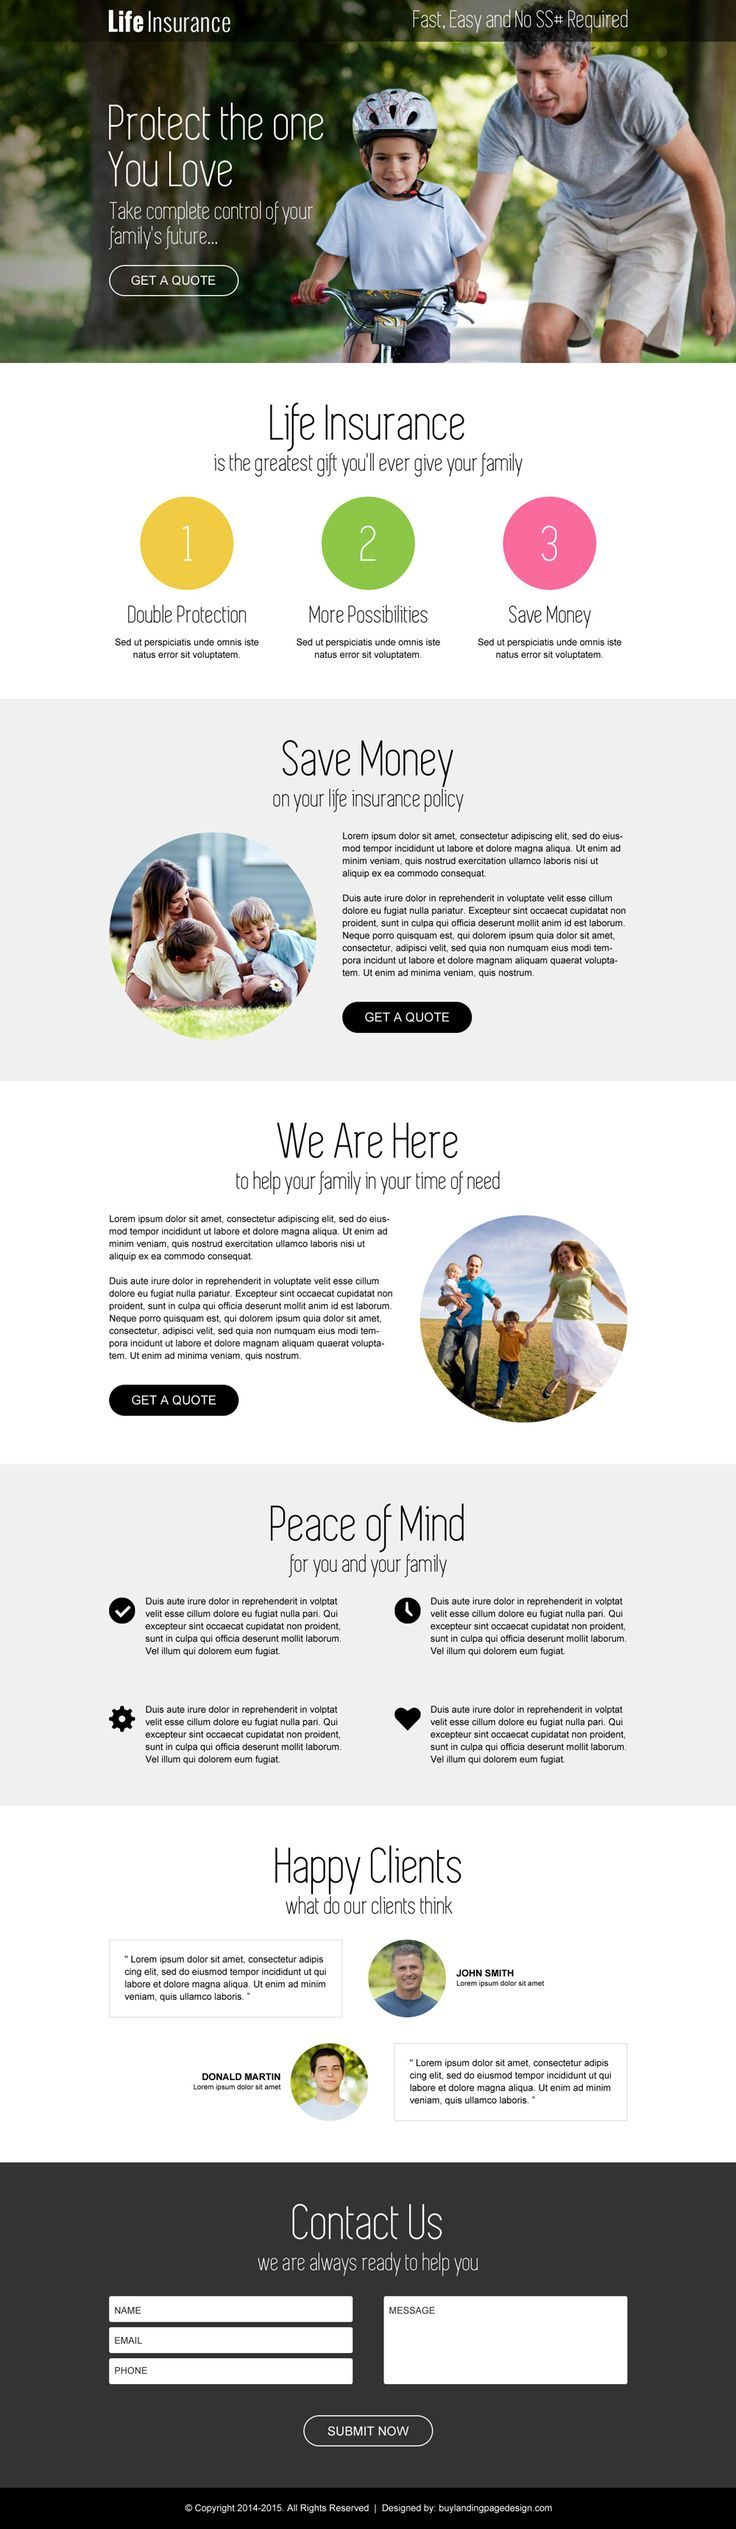 Effective life insurance landing pages to improve your